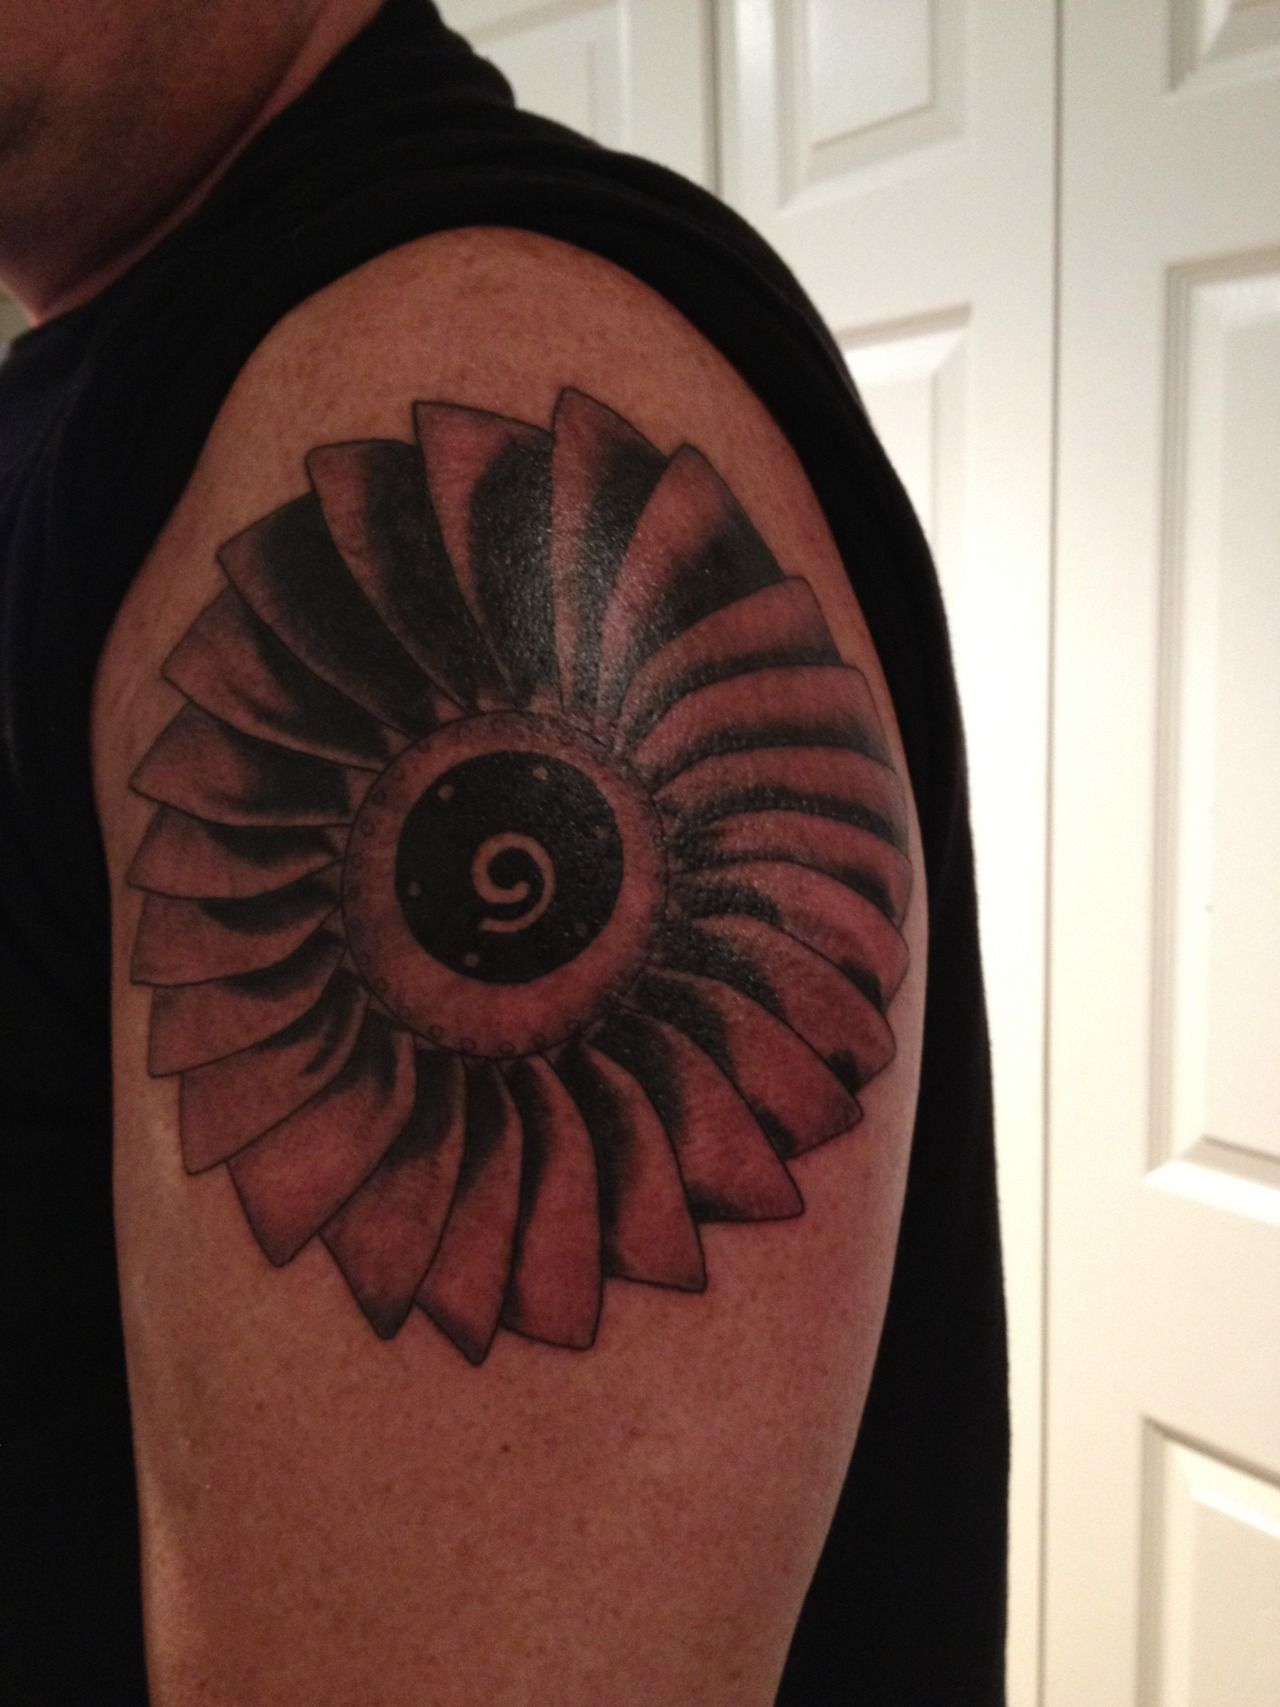 hmmm maybe but girly this is a tattoo of the fan blades of a 737 jet engine im an aircraft mechanic done by mike carter of ink inc in mckinney tx